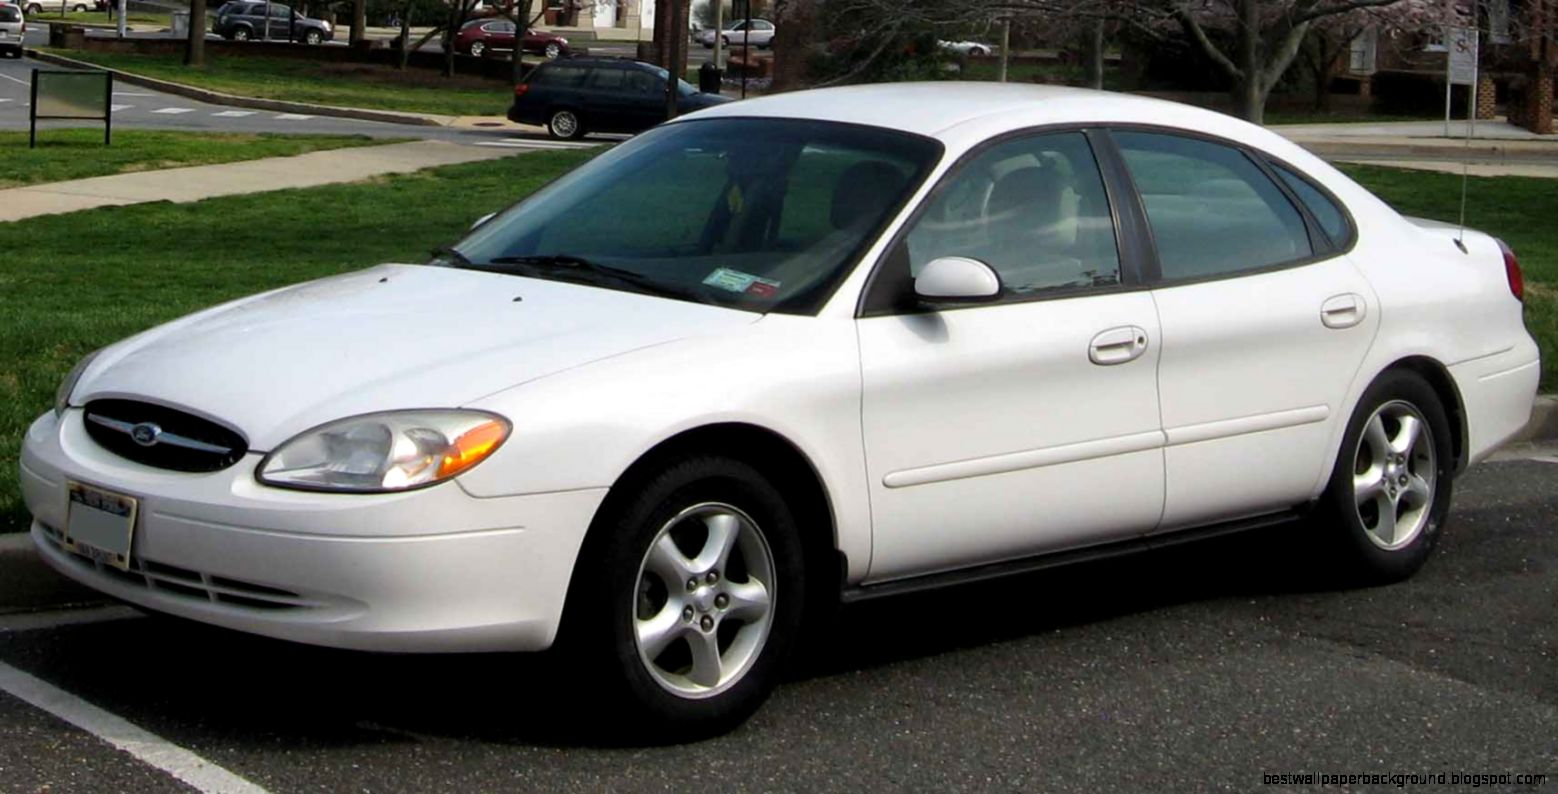 Ford Taurus Best Wallpaper Background Electric Guitar Design Wikipedia The Free Encyclopedia View Original Size